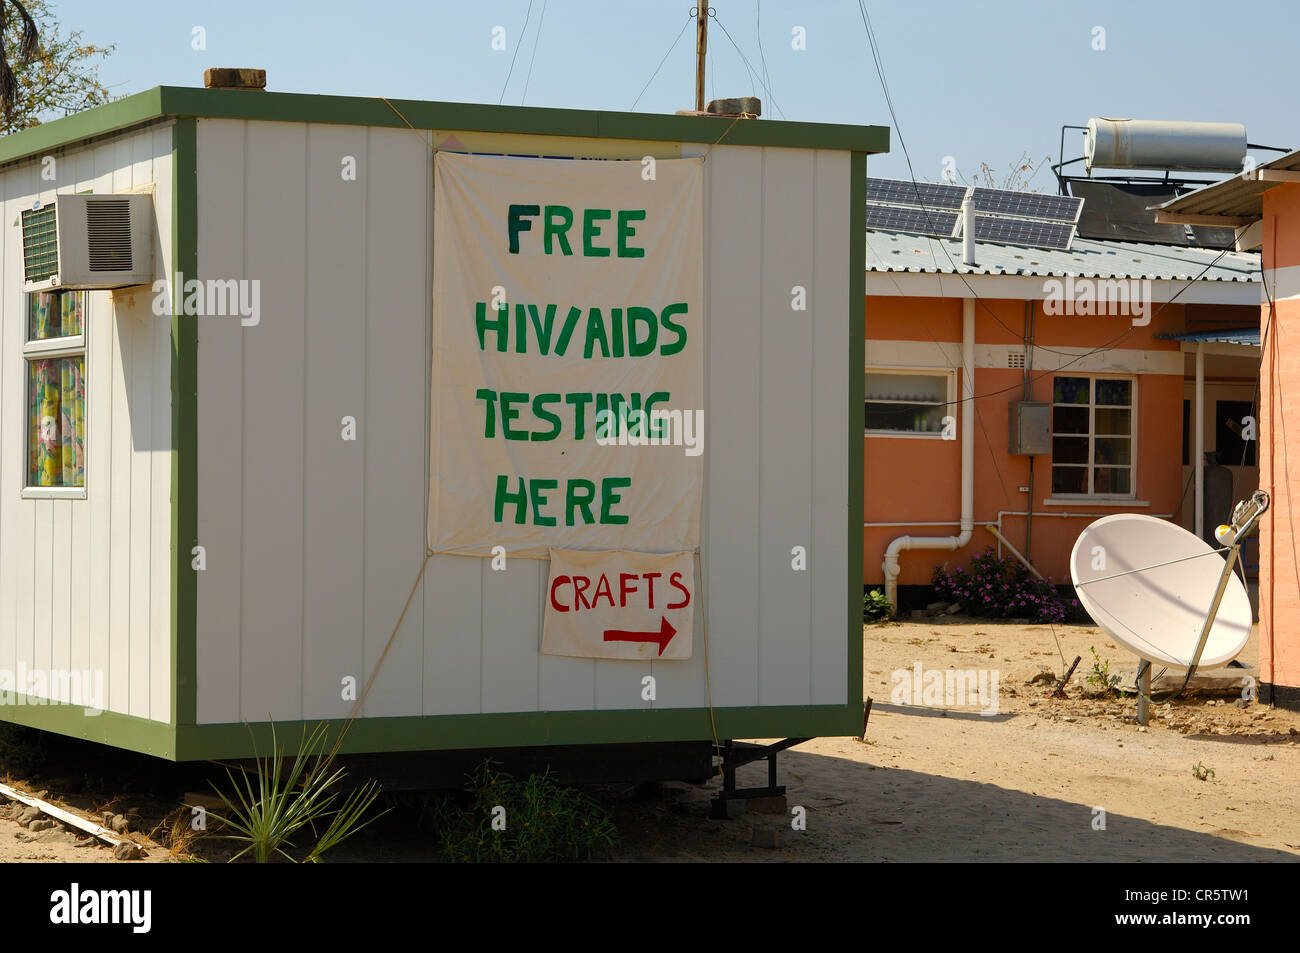 Free Hiv Testing Offered At A Rural Aids Clinic In A Hut Kachikau Stock Photo